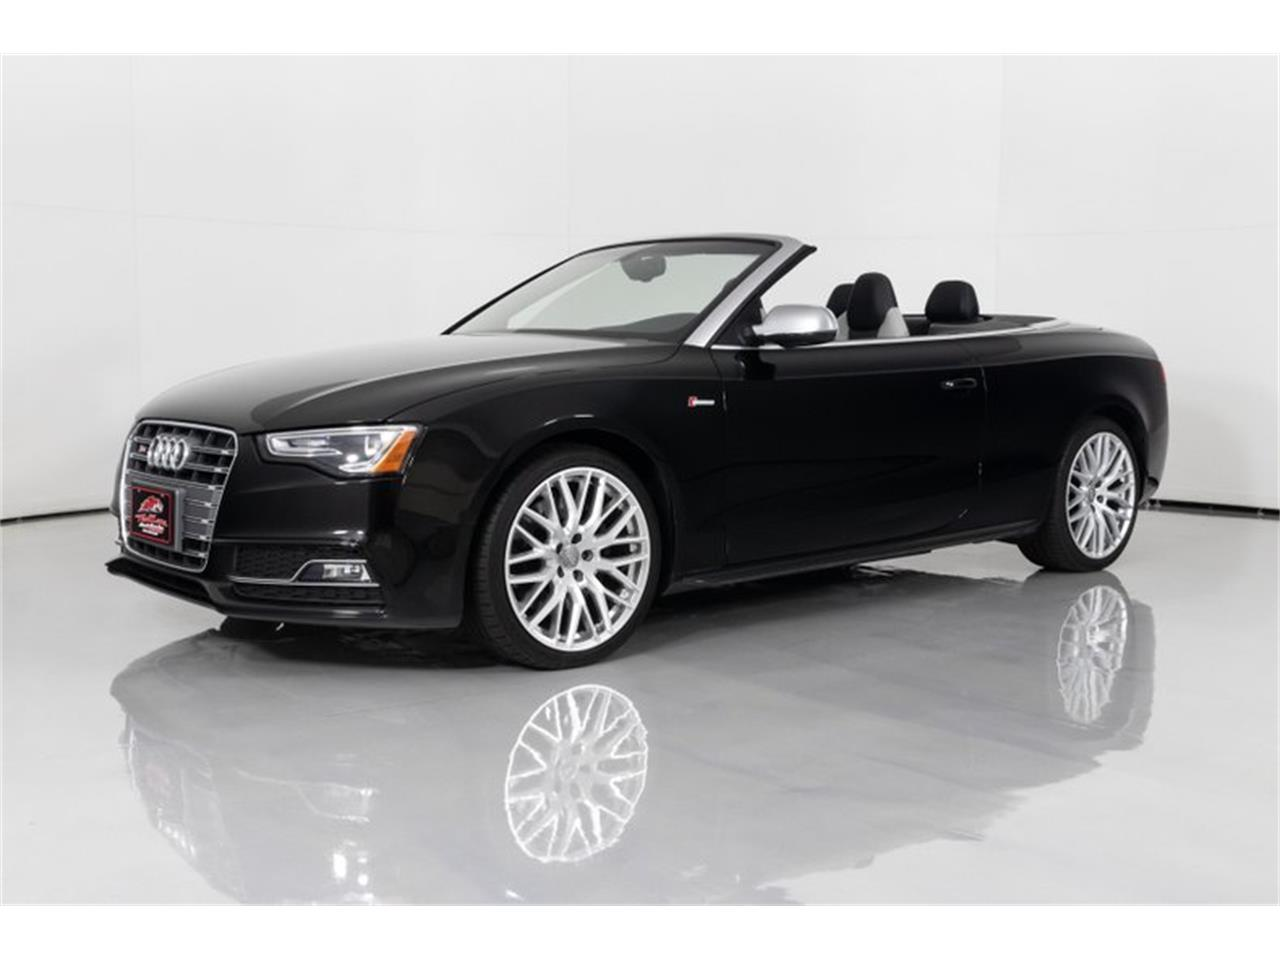 2015 Audi S5 (CC-1420806) for sale in St. Charles, Missouri